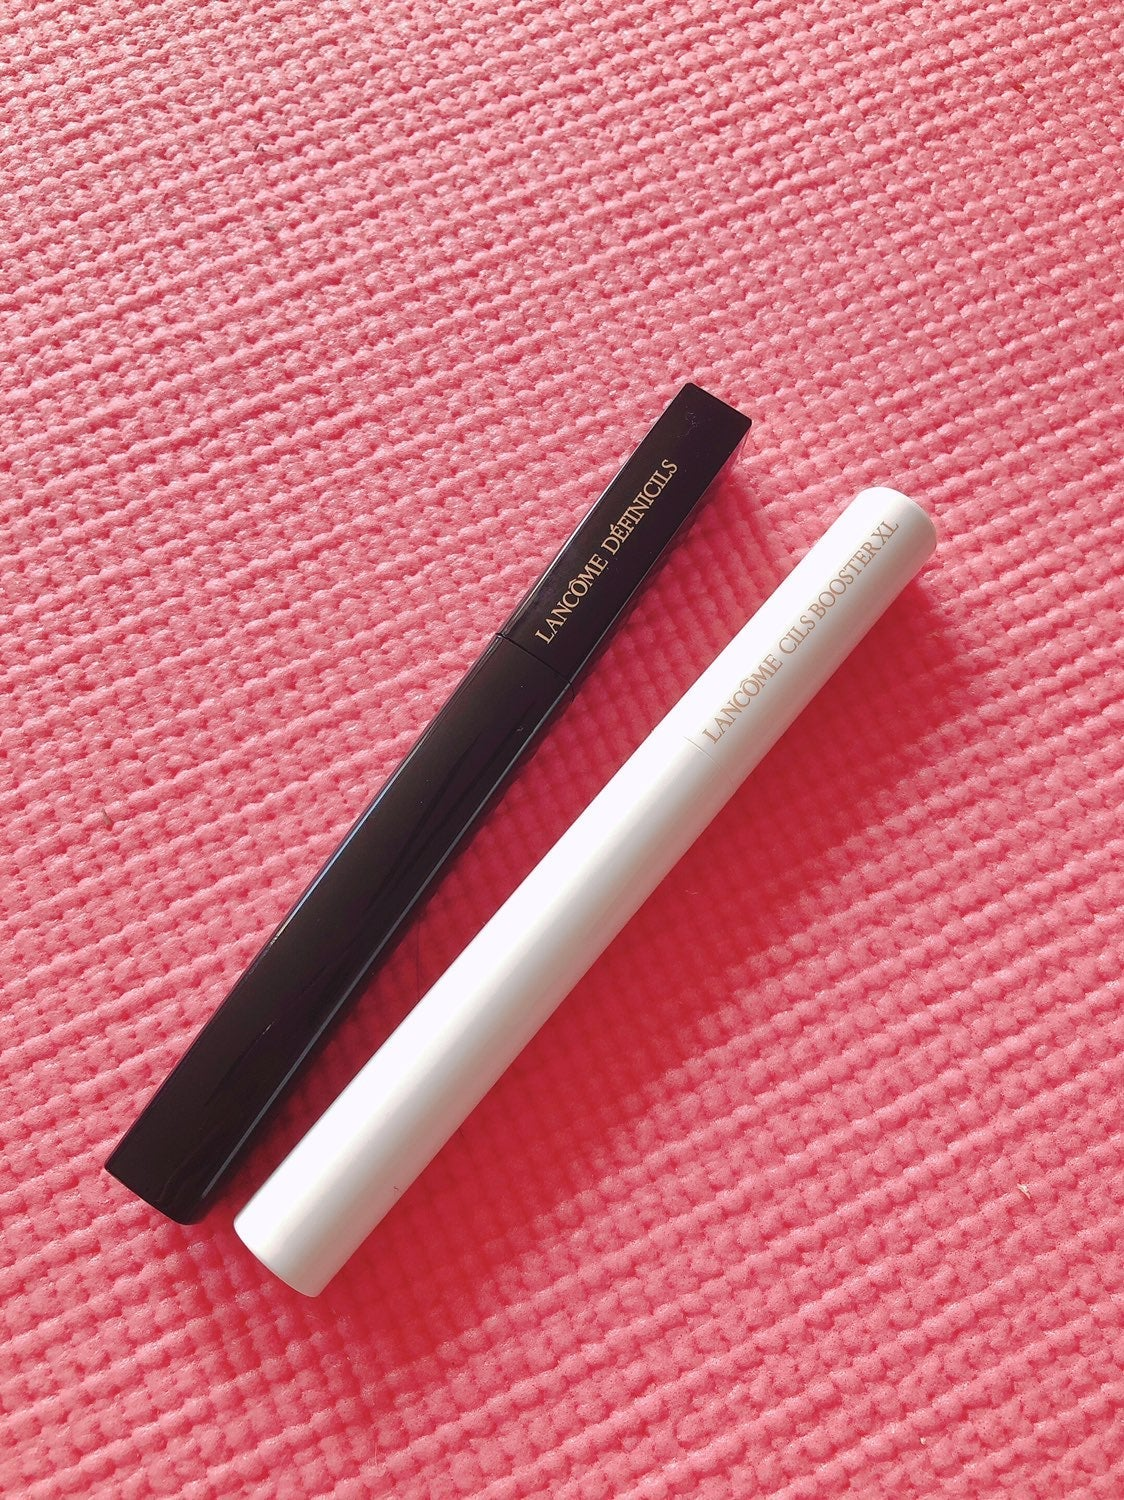 lancome mascara and CILS Booster